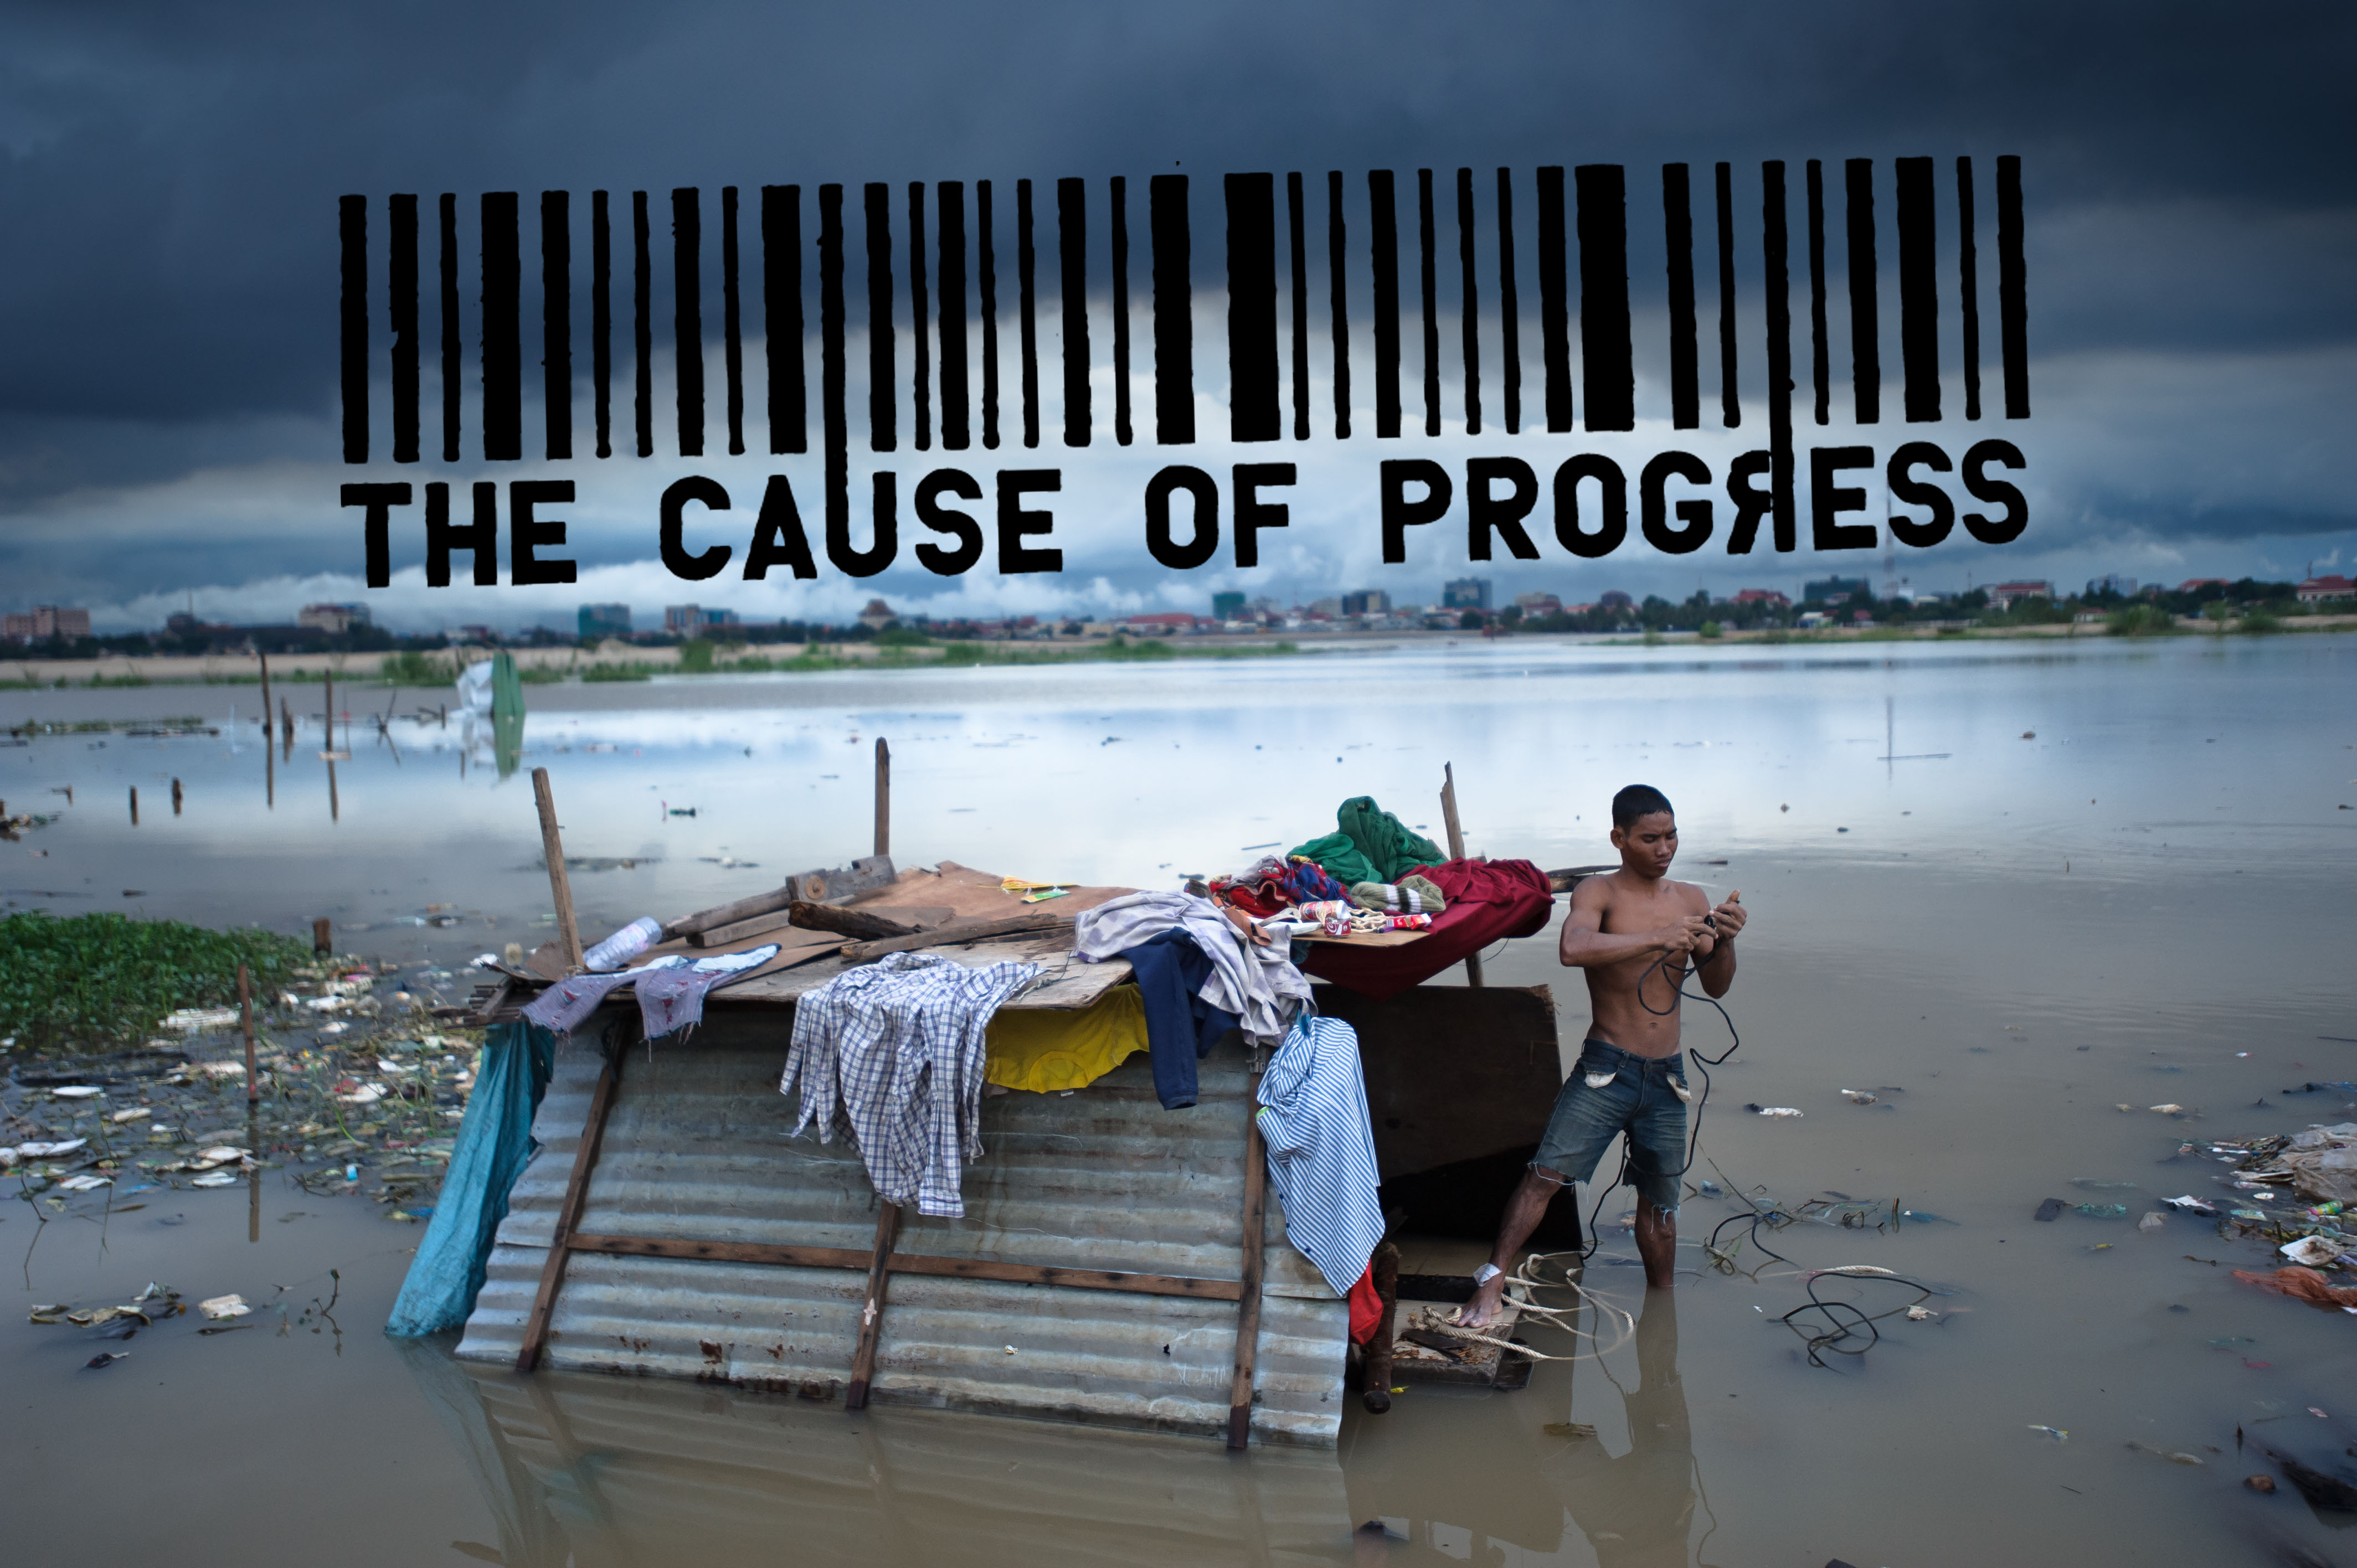 The Cause of Progress